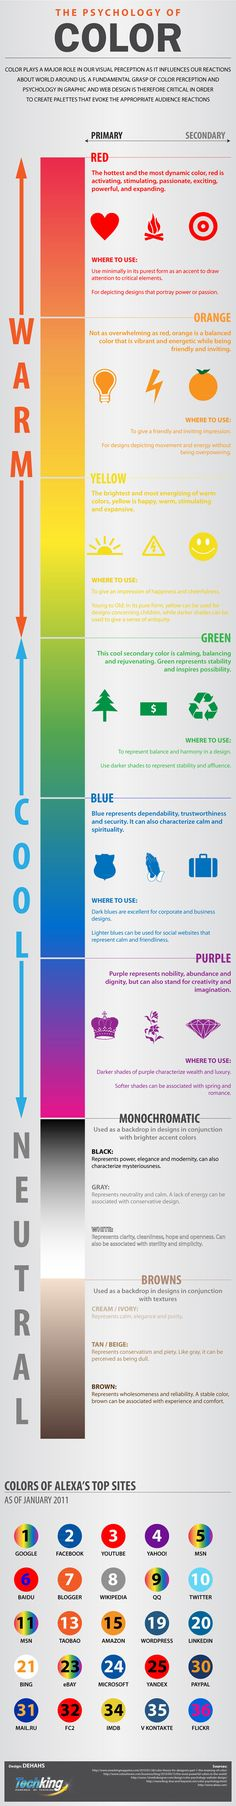 Psychology of colour....part 3  ~ Repinned by Federal Financial Group LLC #FederalFinancialGroupLLC #FFG #FFG2 http://ffg2.com